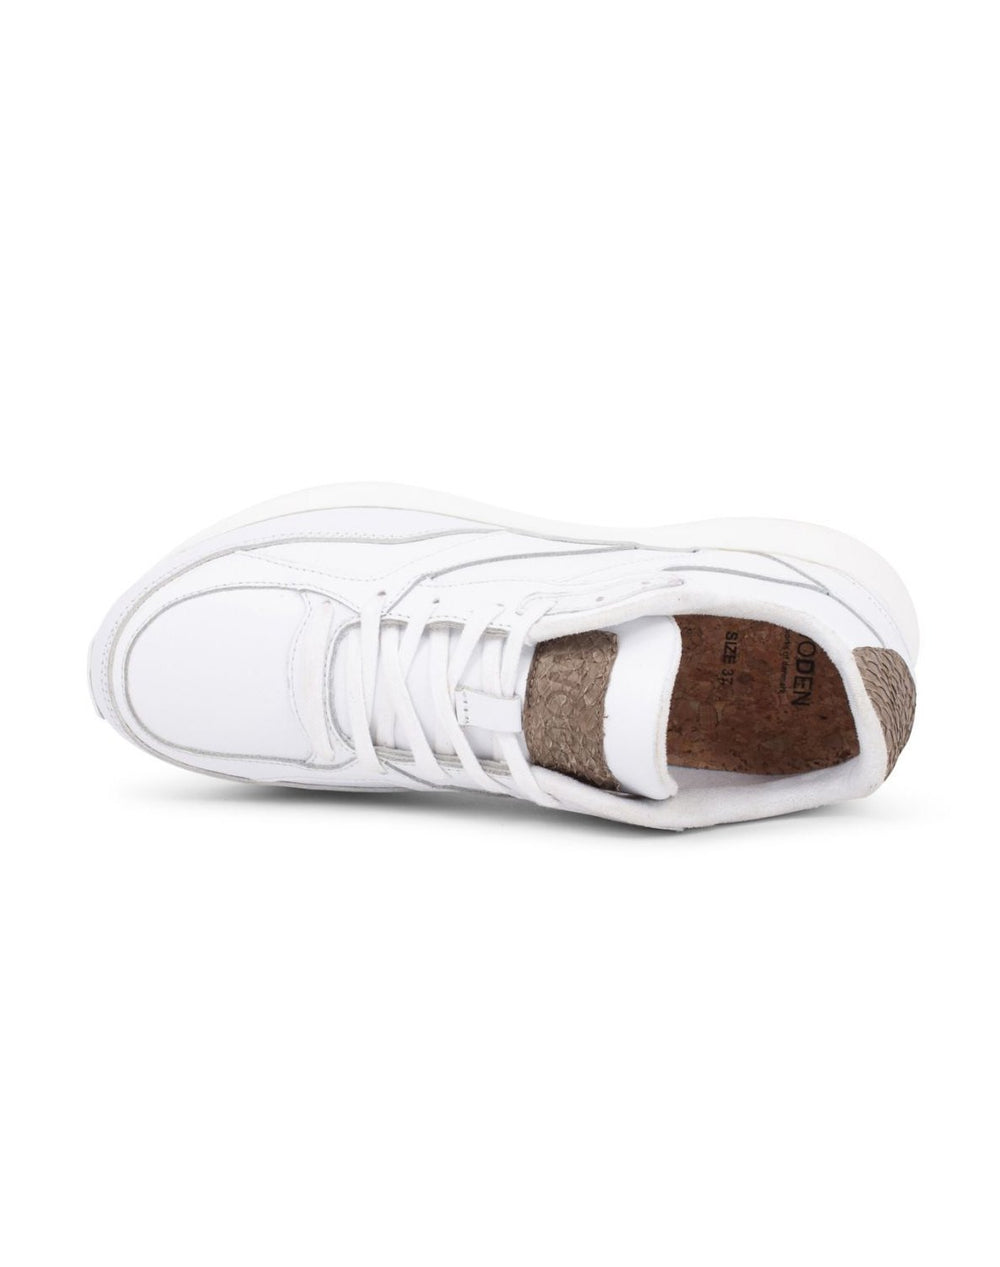 Woden Sophie leather sneakers bright white - Online-Mode